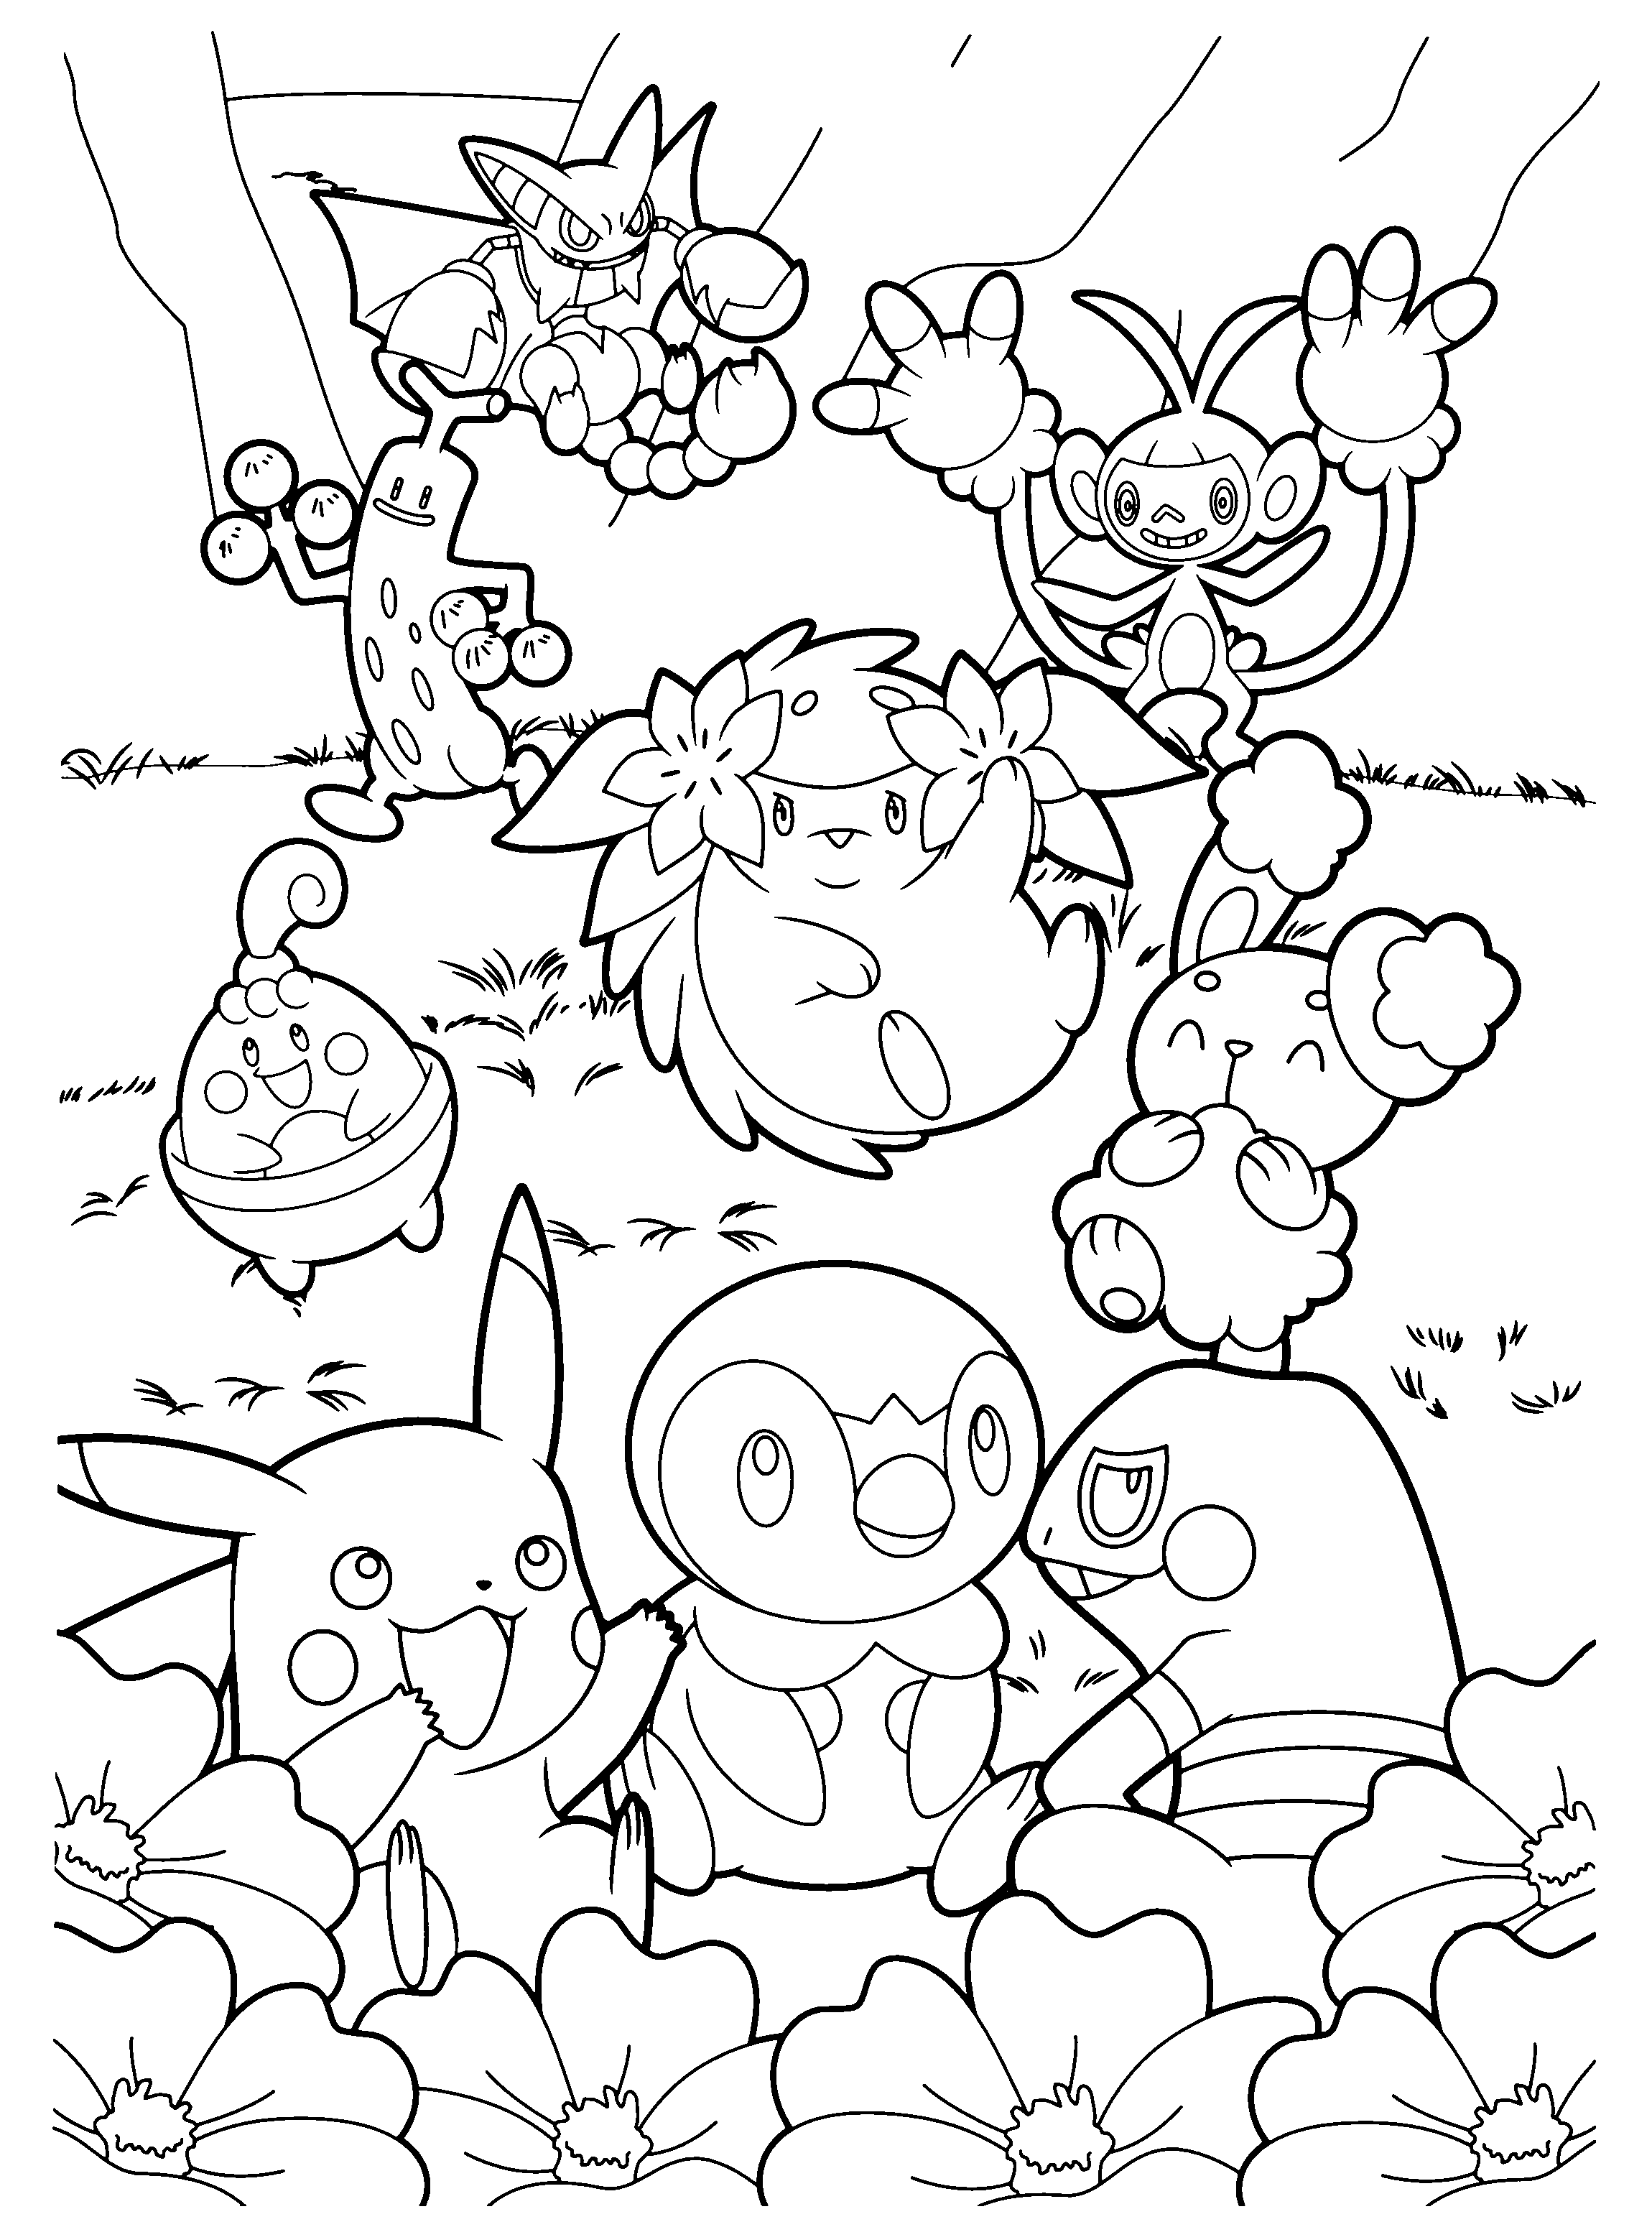 pakemon diamond pearl coloring pages - photo #27